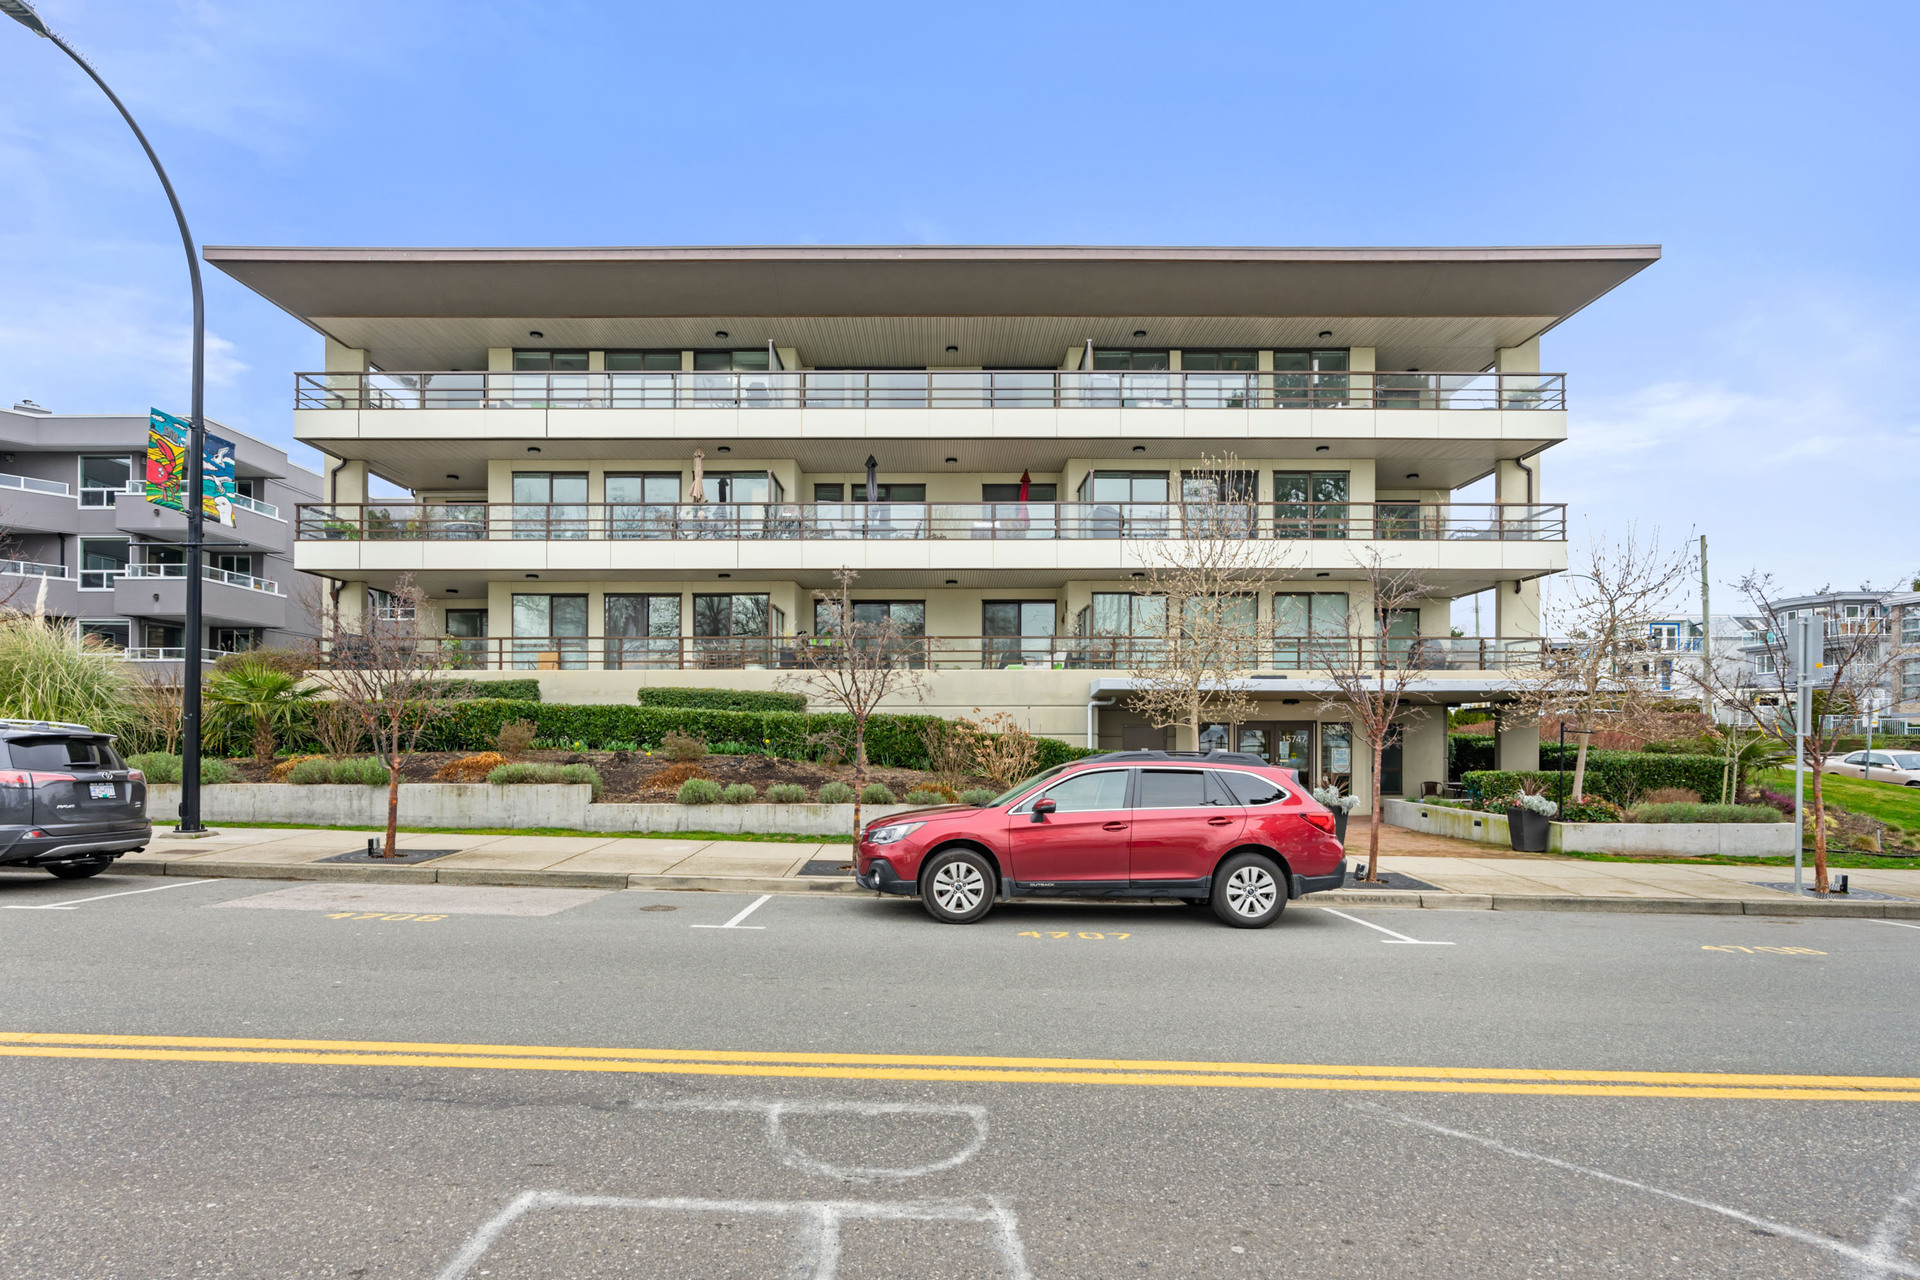 54133_2 at 204 - 15747 Marine Drive, White Rock, South Surrey White Rock